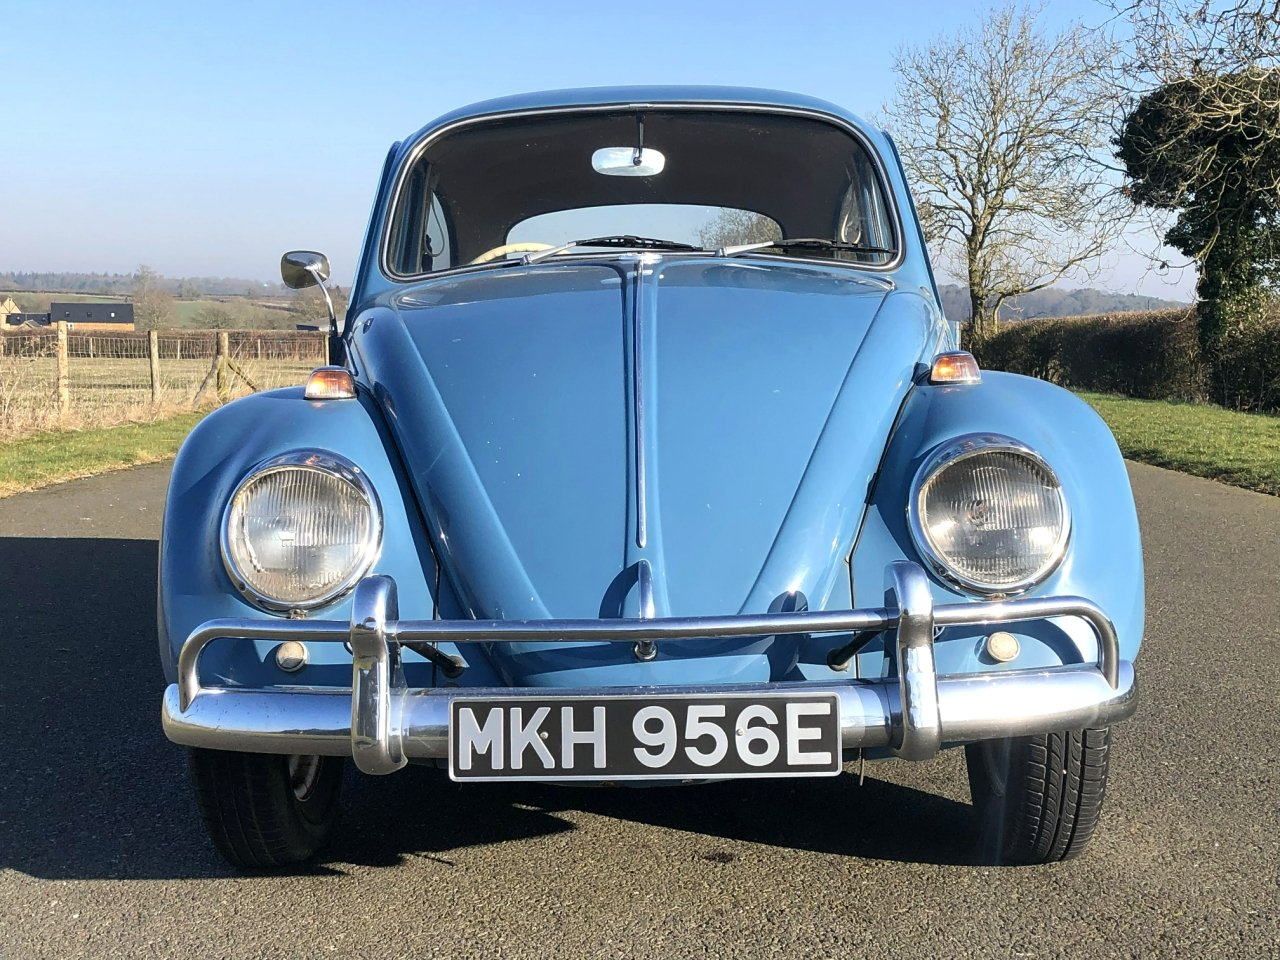 1967 Volkswagen Beetle 1300cc SOLD (picture 2 of 6)